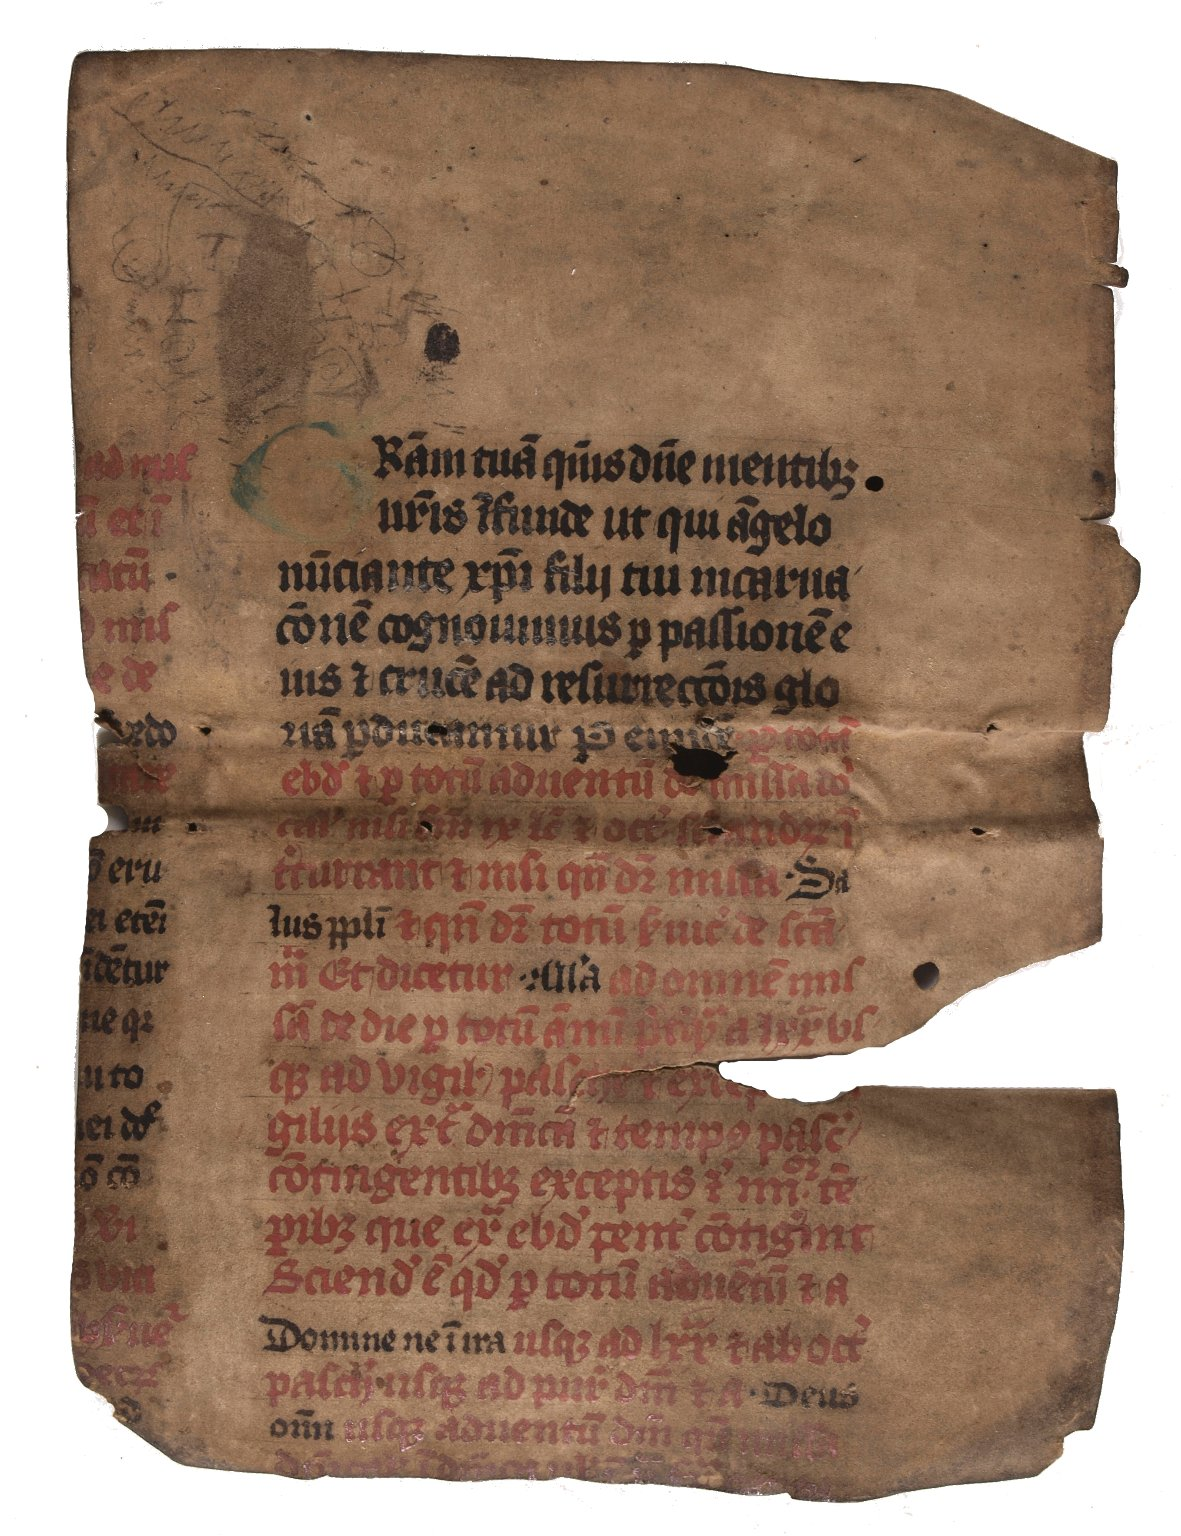 Inside original vellum cover, STC 12158.8.